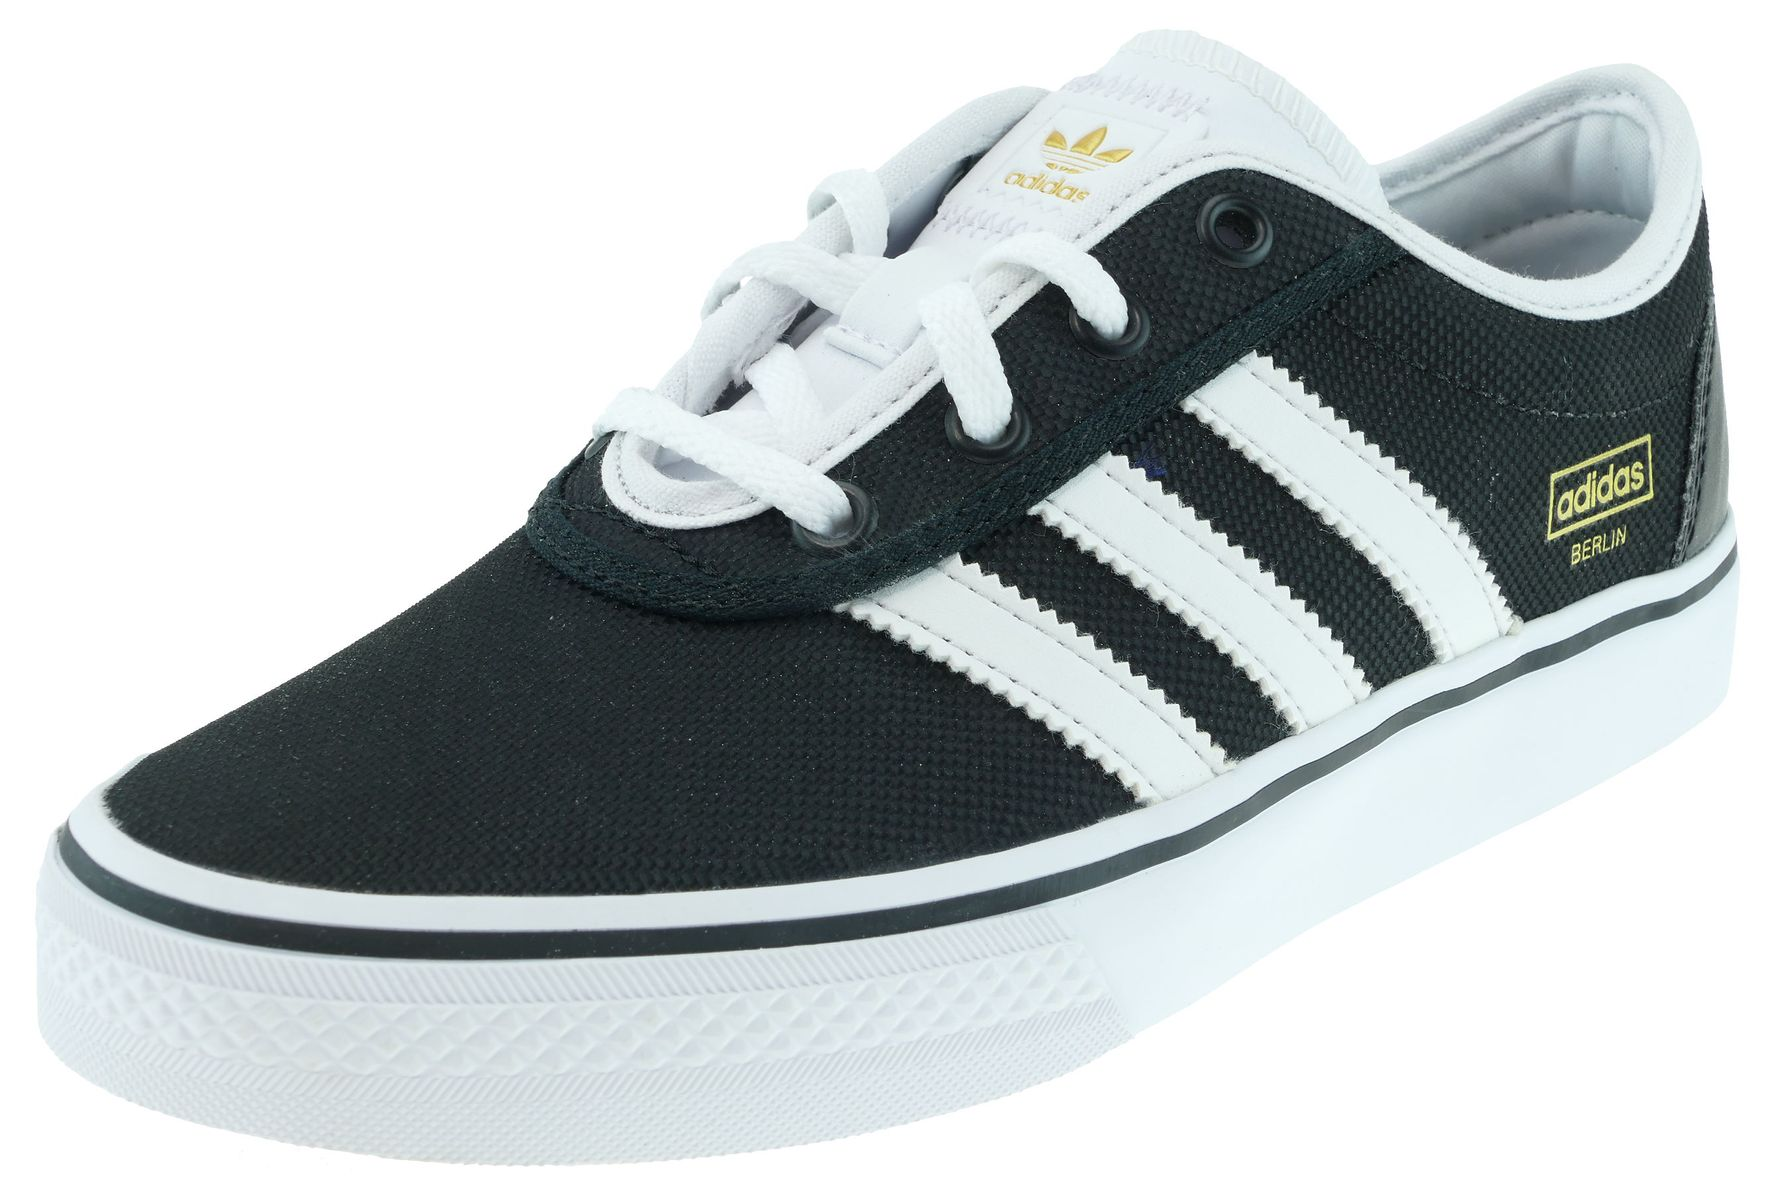 Adidas originals Adi Ease c black ftw white gold mt | | schuhe524 GmbH